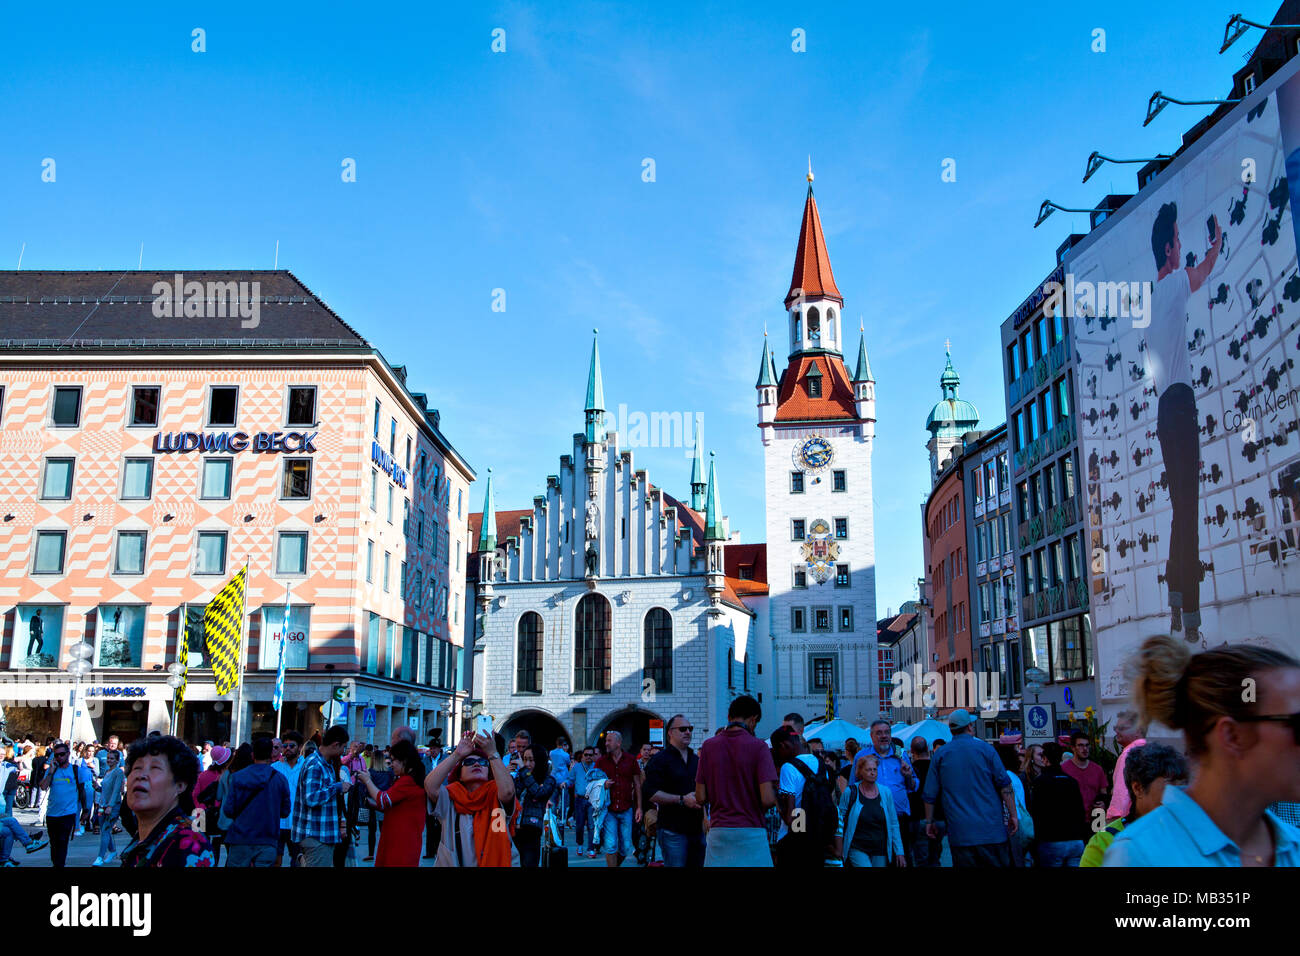 Munich, Germany - September 24, 2016: People in front of  the old Townhall at Marienplatz in Munich (Mary's Square) - Stock Image